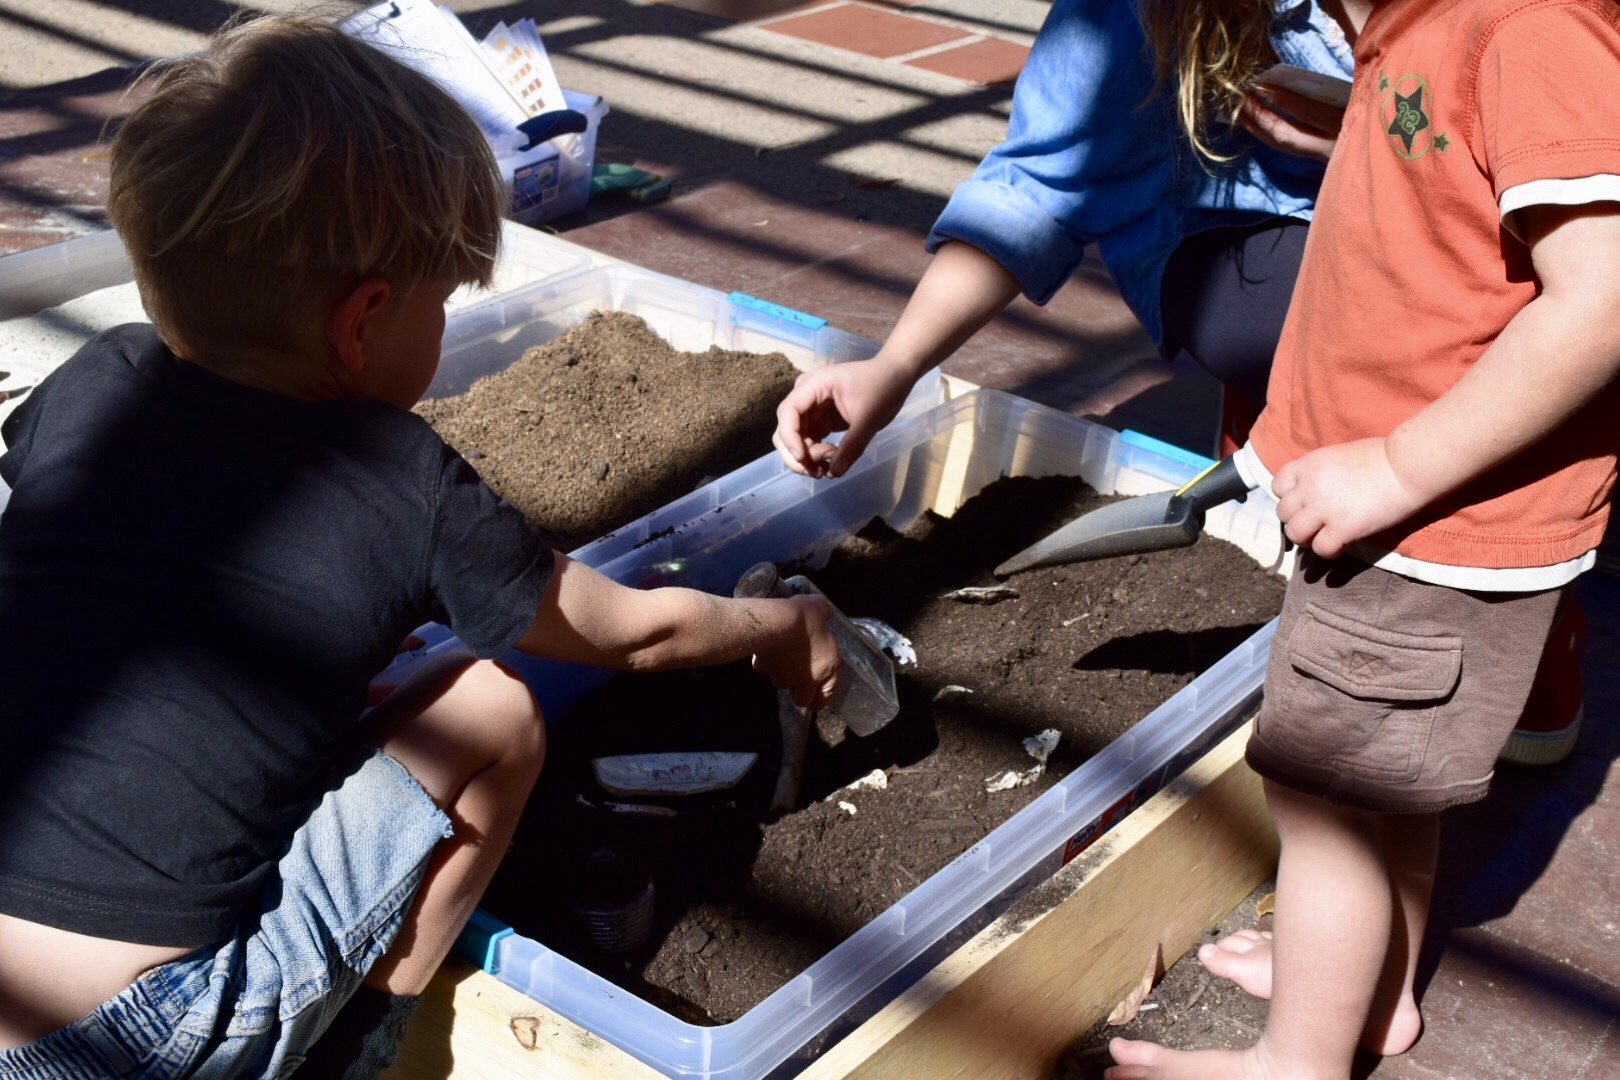 Photo of 2 small children digging with trowels in a large tub of soil to uncover artifacts and simulate excavation